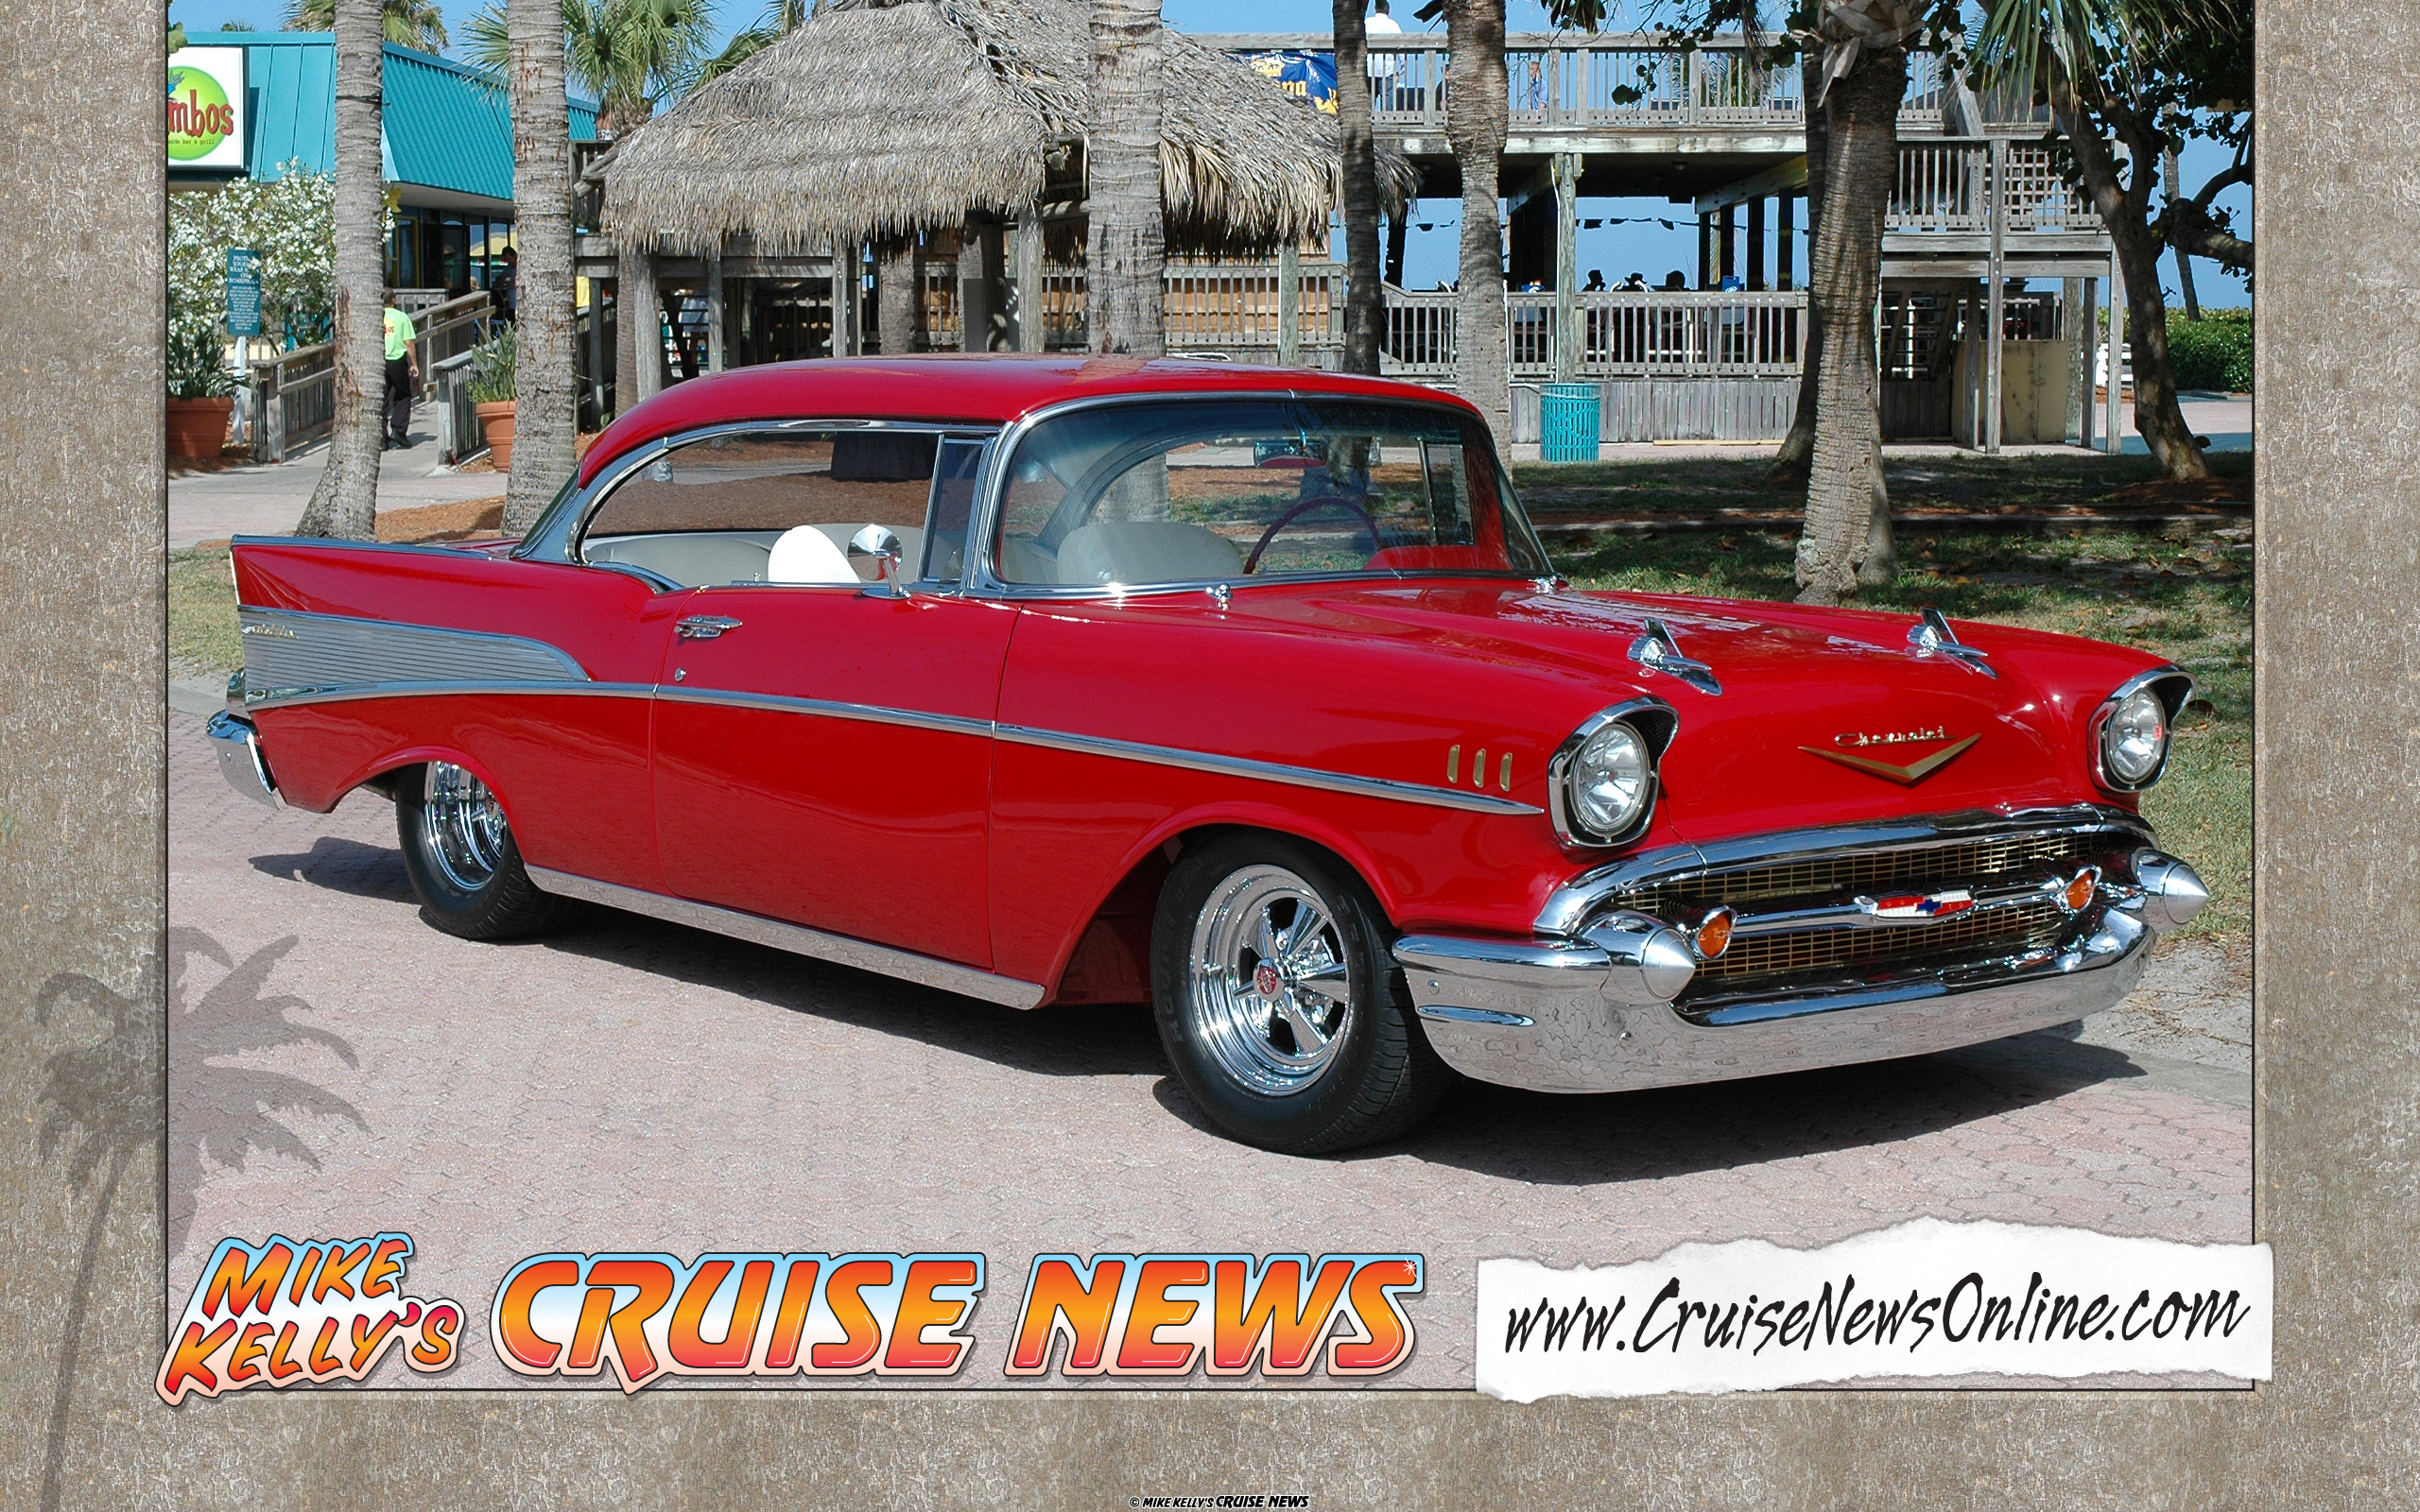 Special Items Mike Kellys Cruise News 1957 Chevy Impala Convertible Bel Air Wallpaper 2560x1600 Widescreen